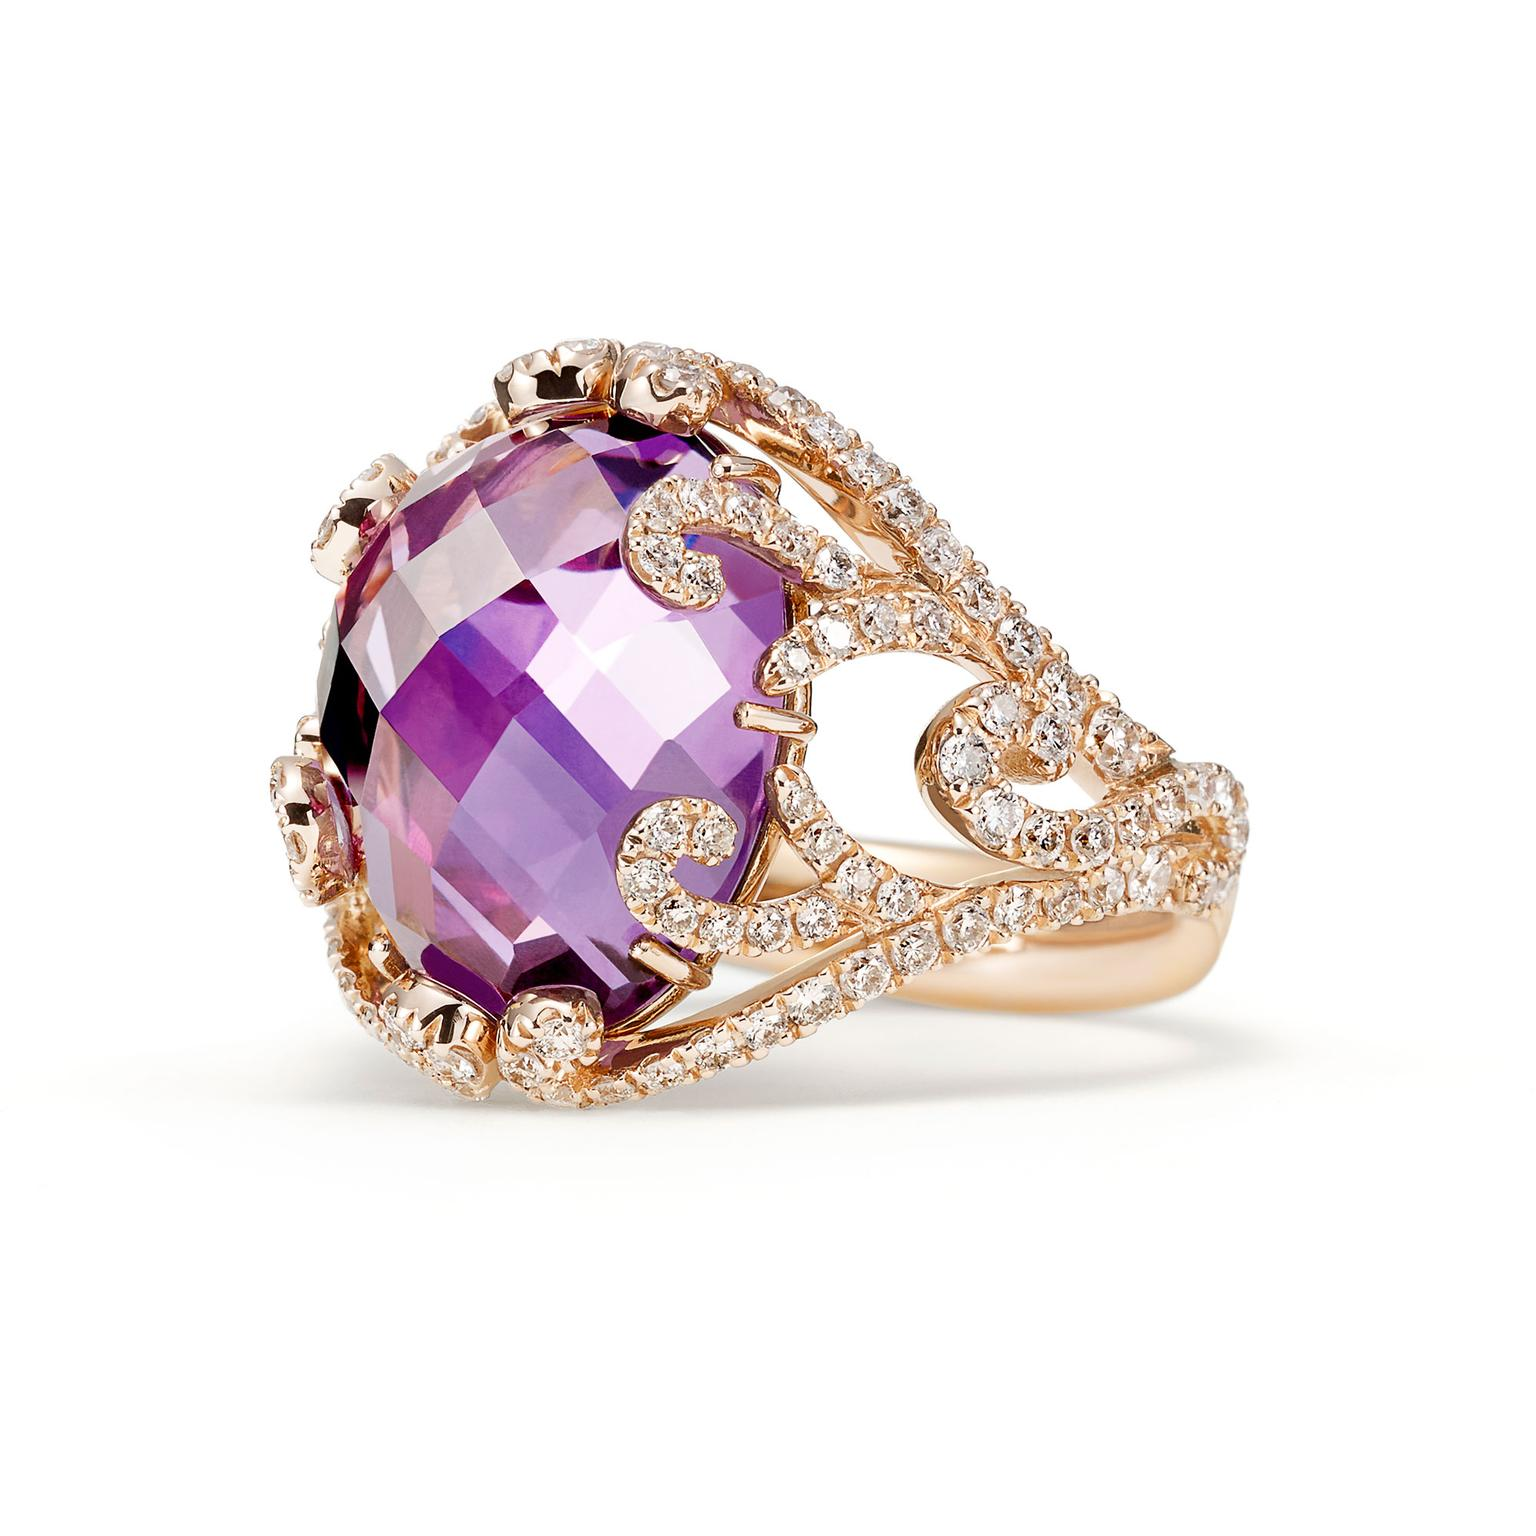 Sarah Ho amethyst ring for Willam & Sons